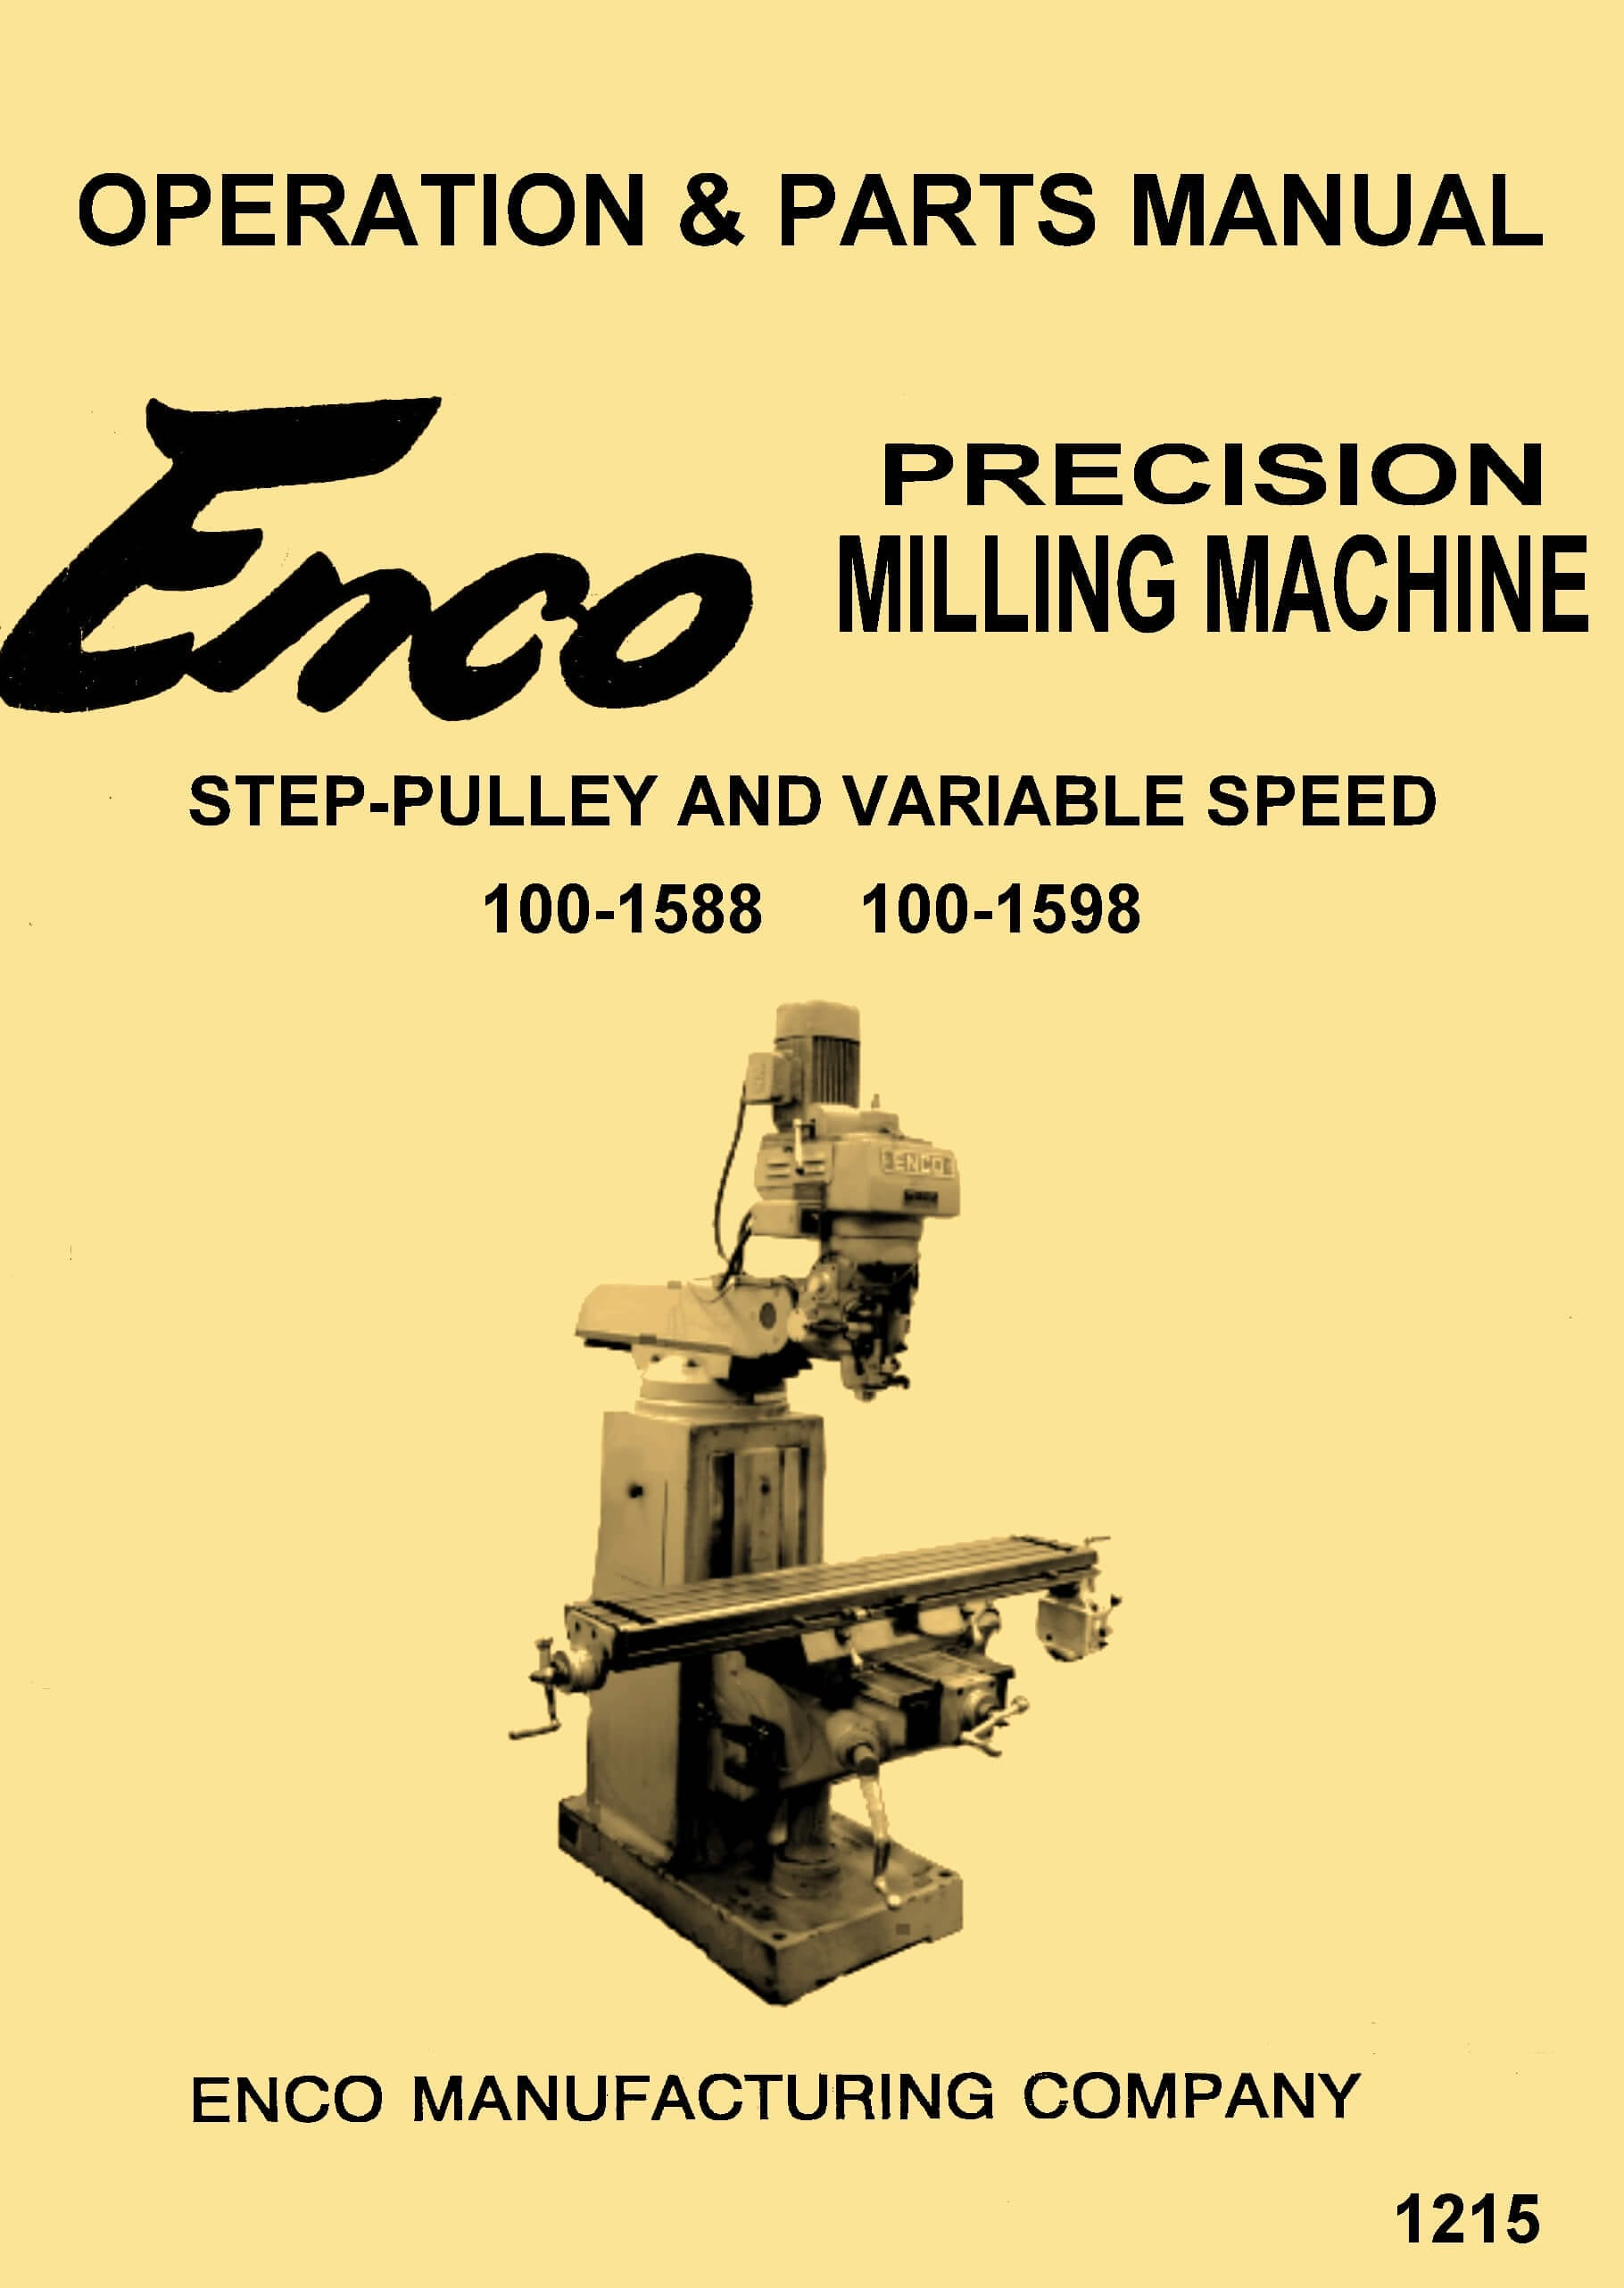 MSC Enco Grizzly Asian 0001 1.5HP Vertical Mill Manual-Jet